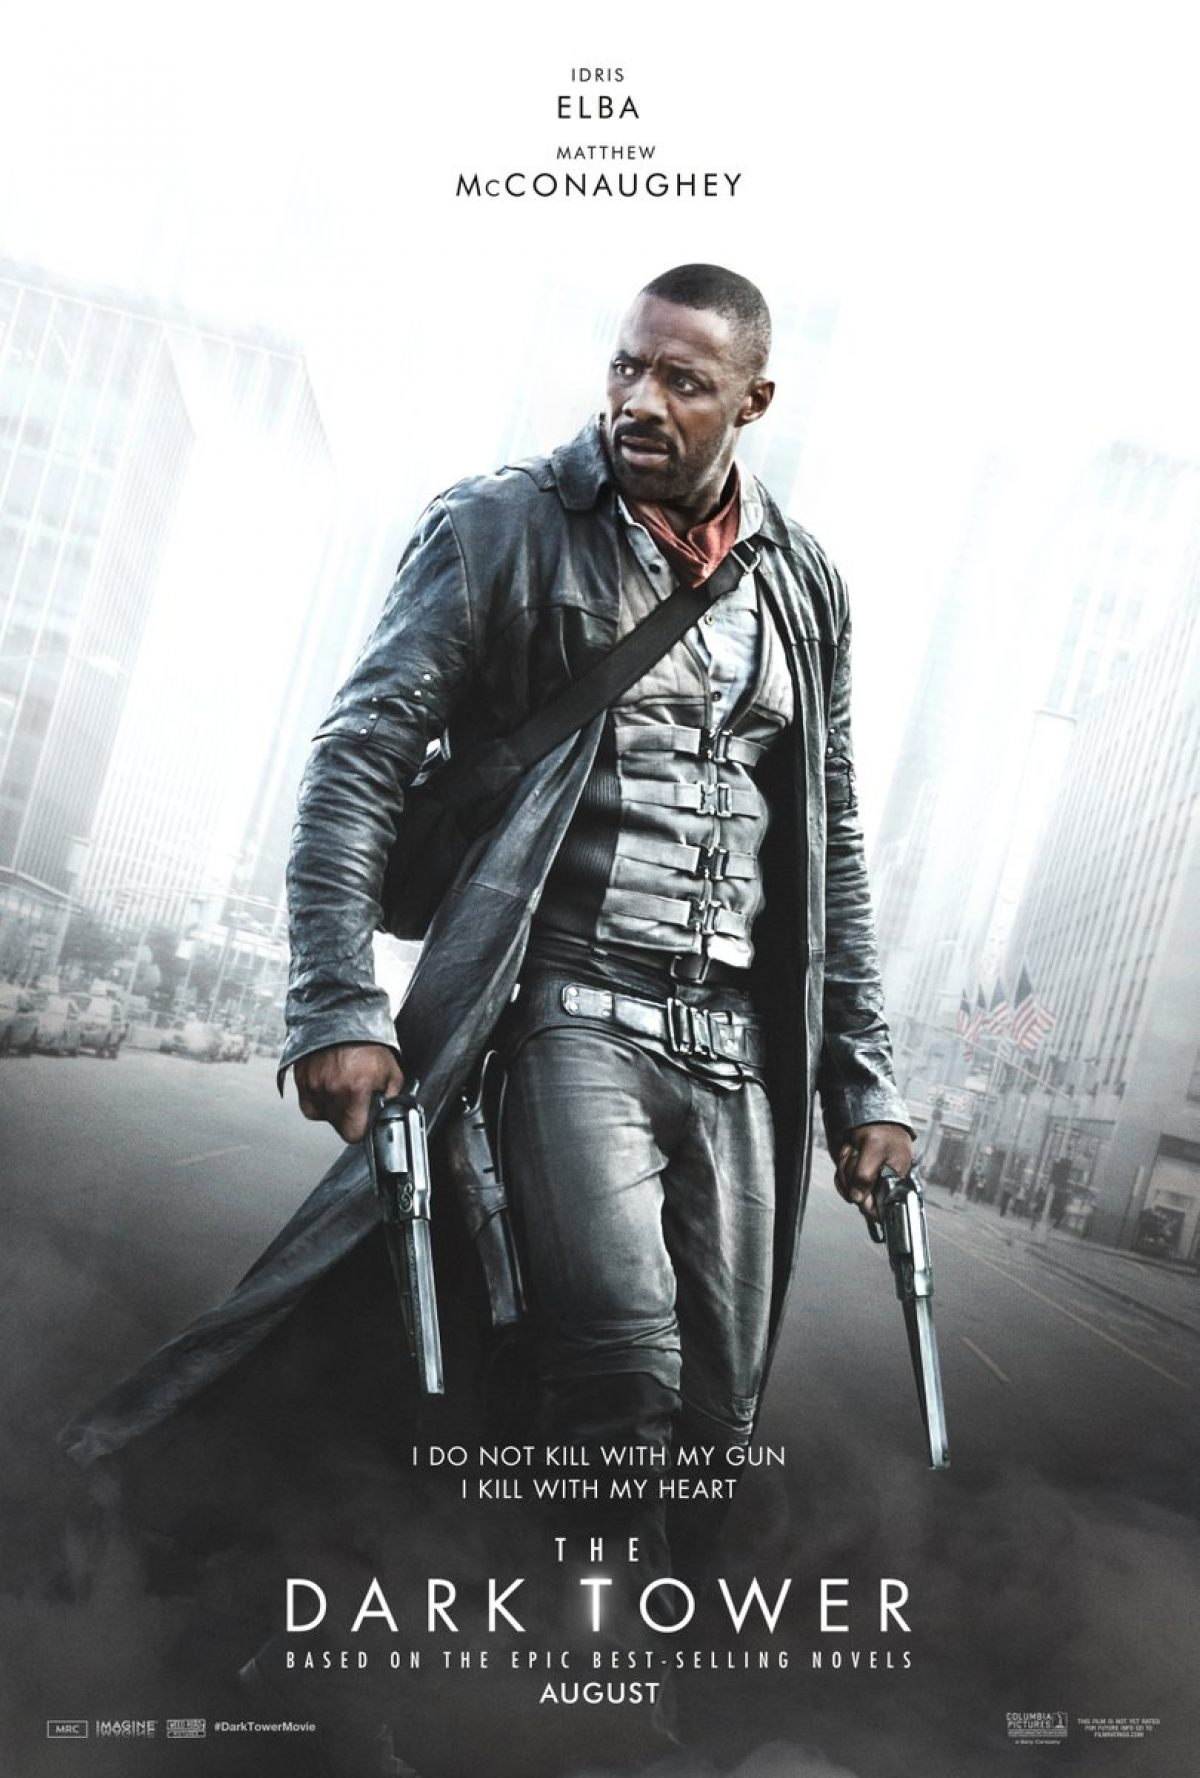 Dark-Tower-Poster-Idris-Elba_1200_1778_81_s